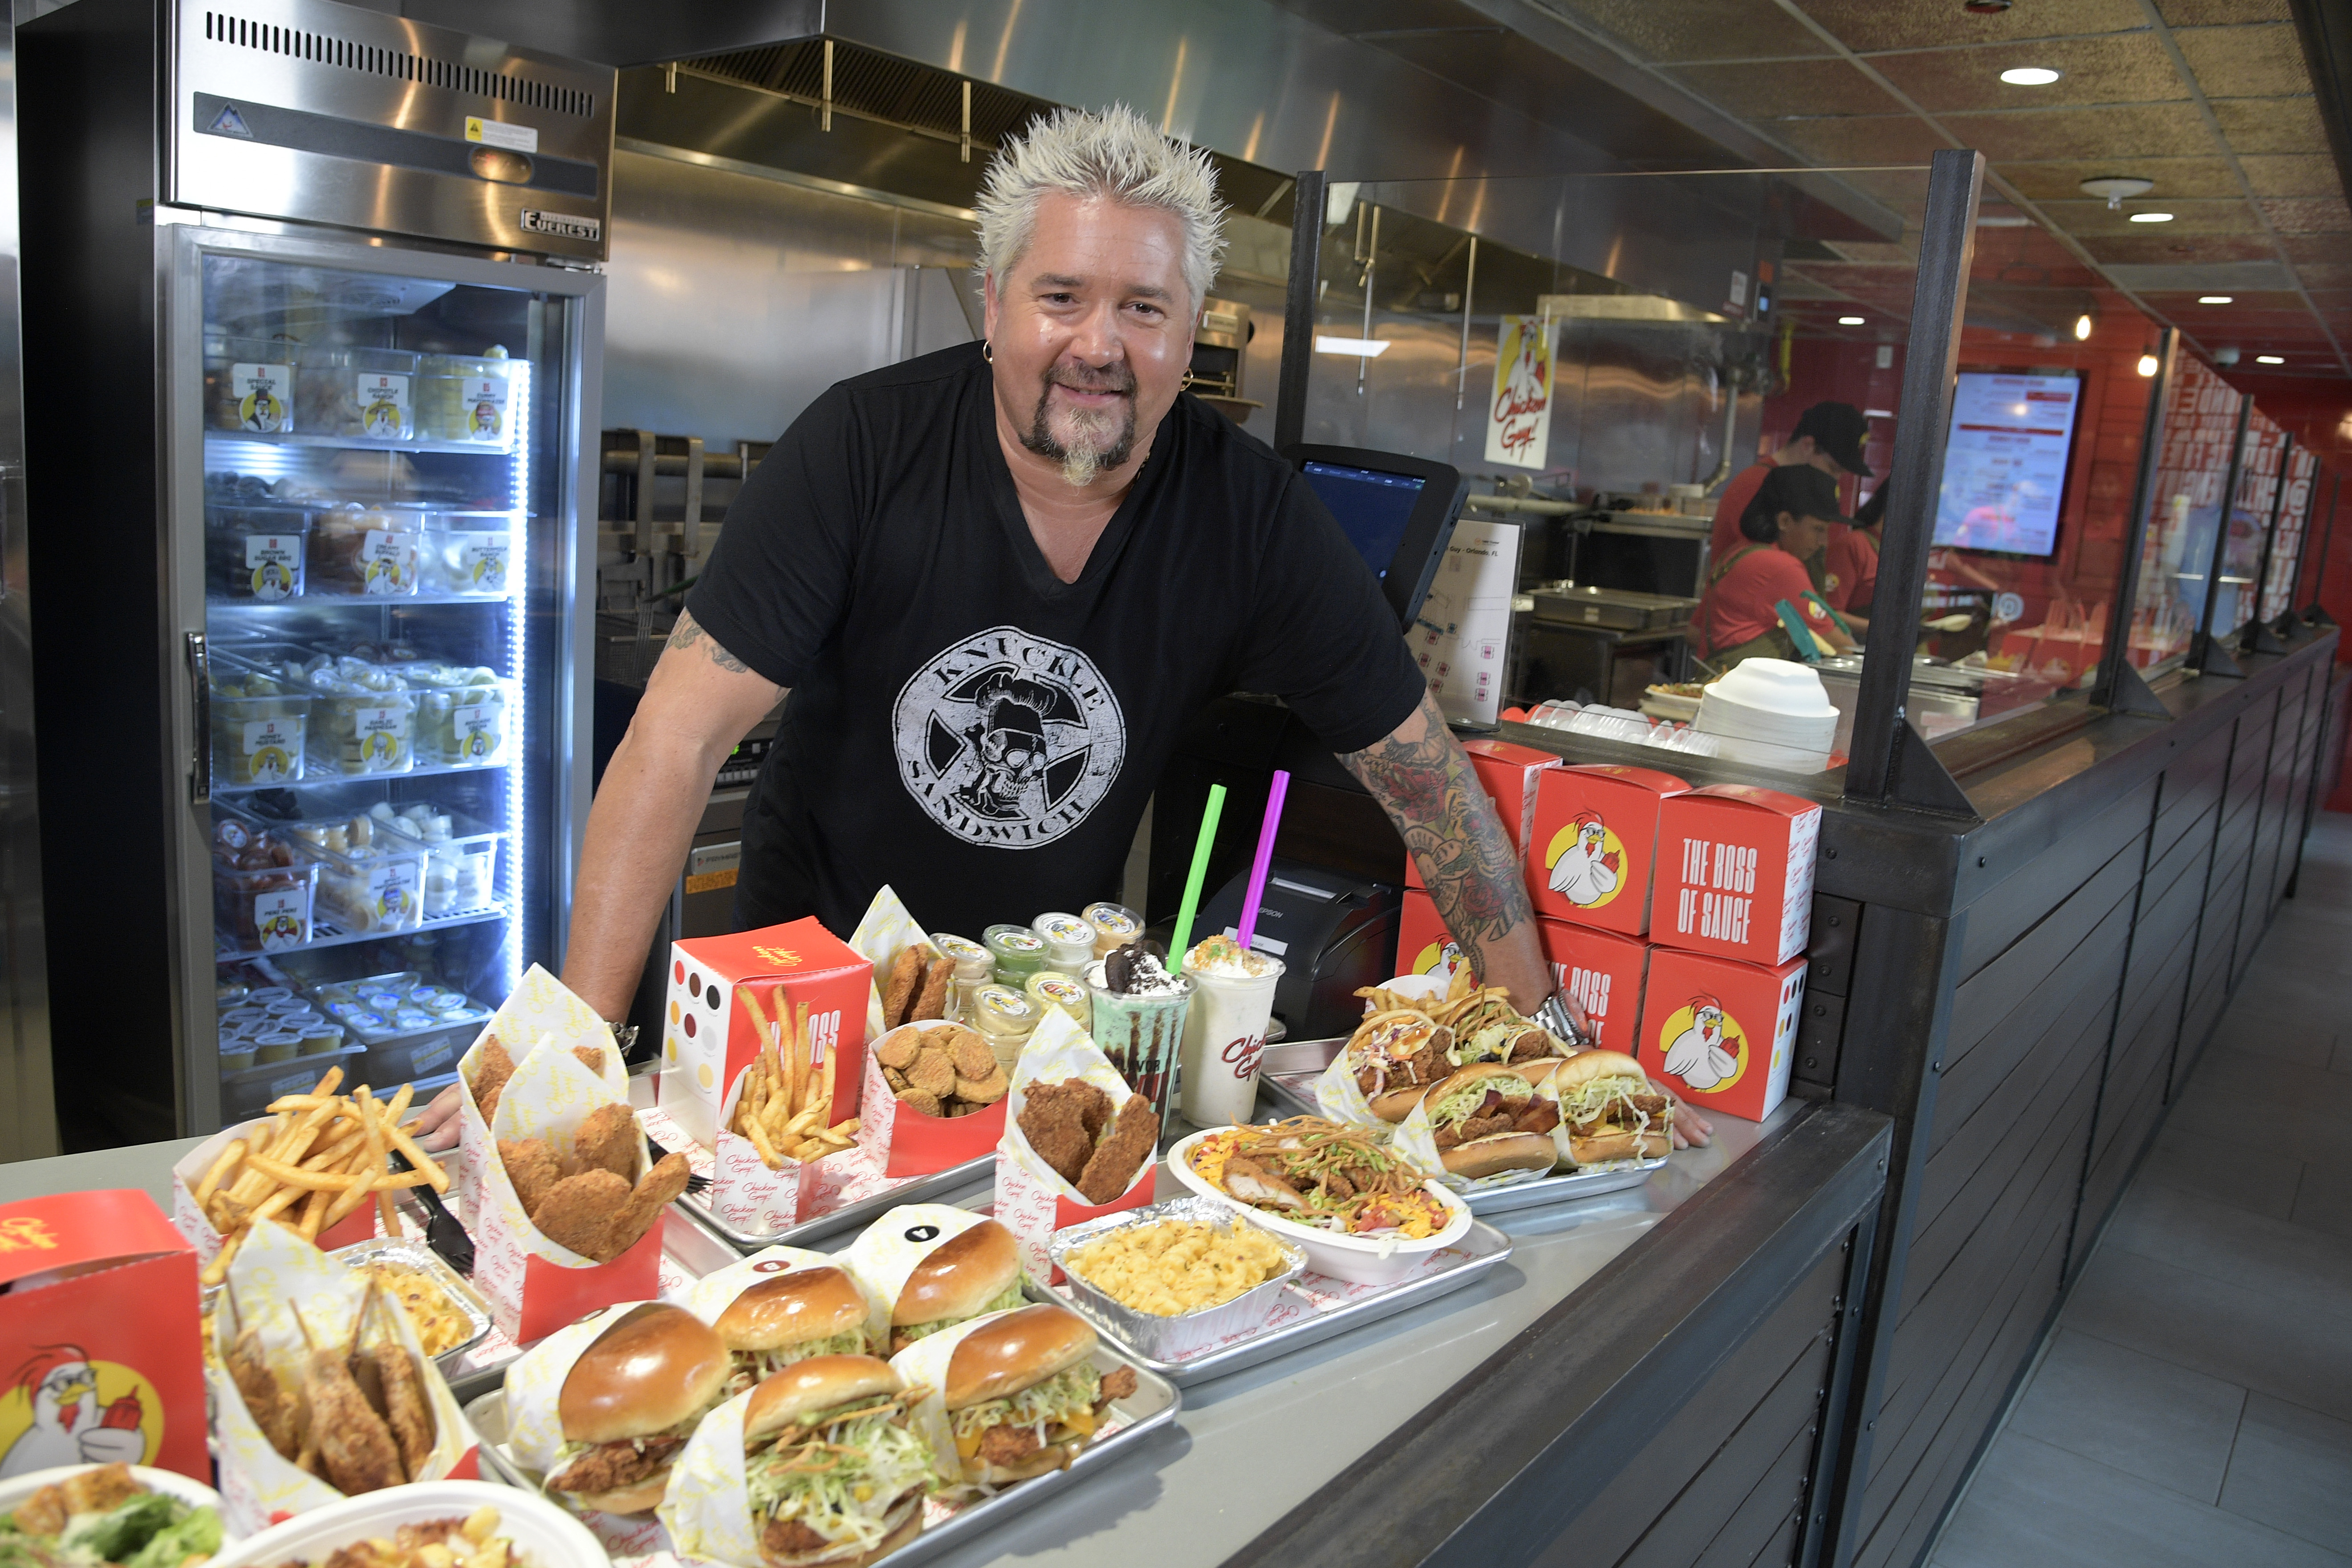 Guy Fieri poses with dishes from Chicken Guy, which opened at FedEx Field in Maryland before the COVID-19 pandemic.